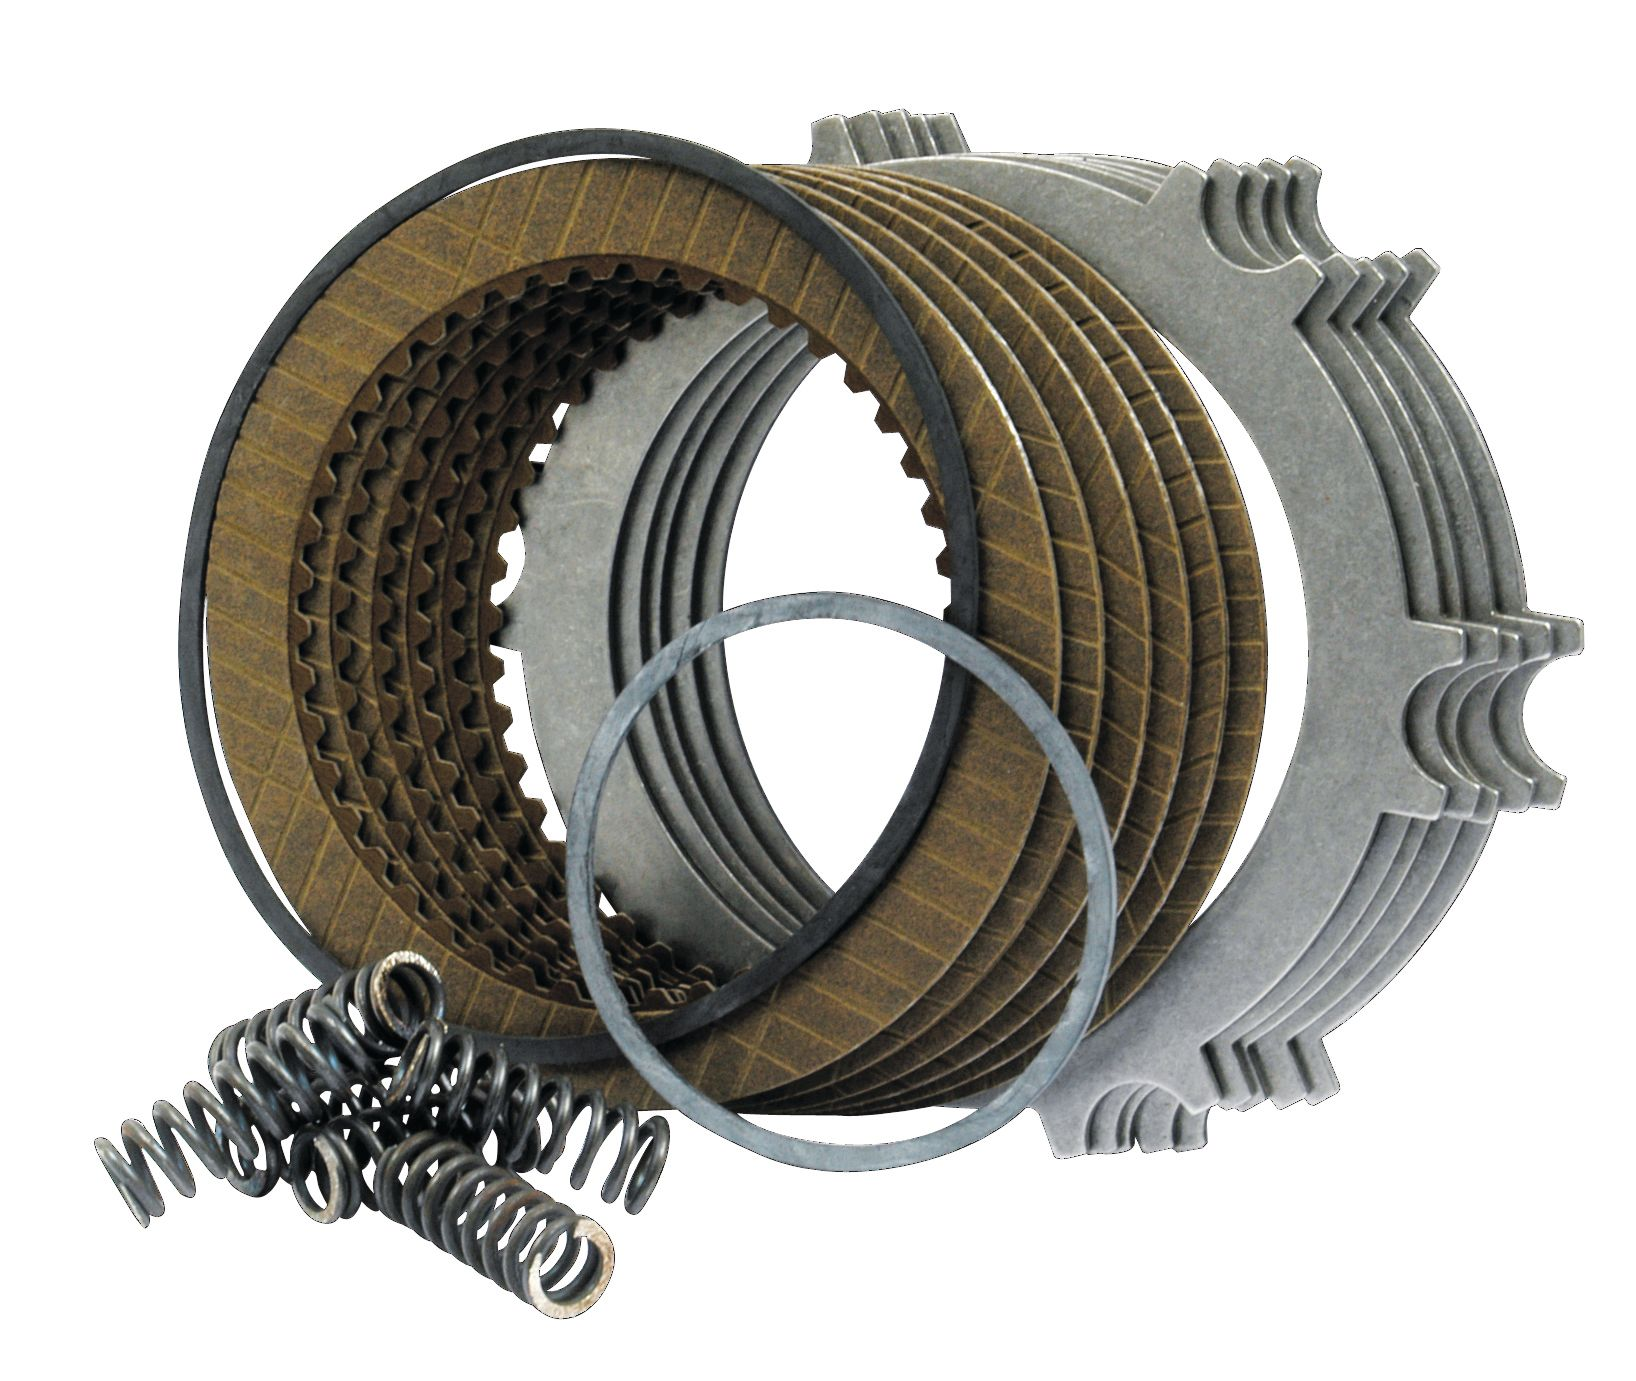 CASE PTO CLUTCH KIT 56855